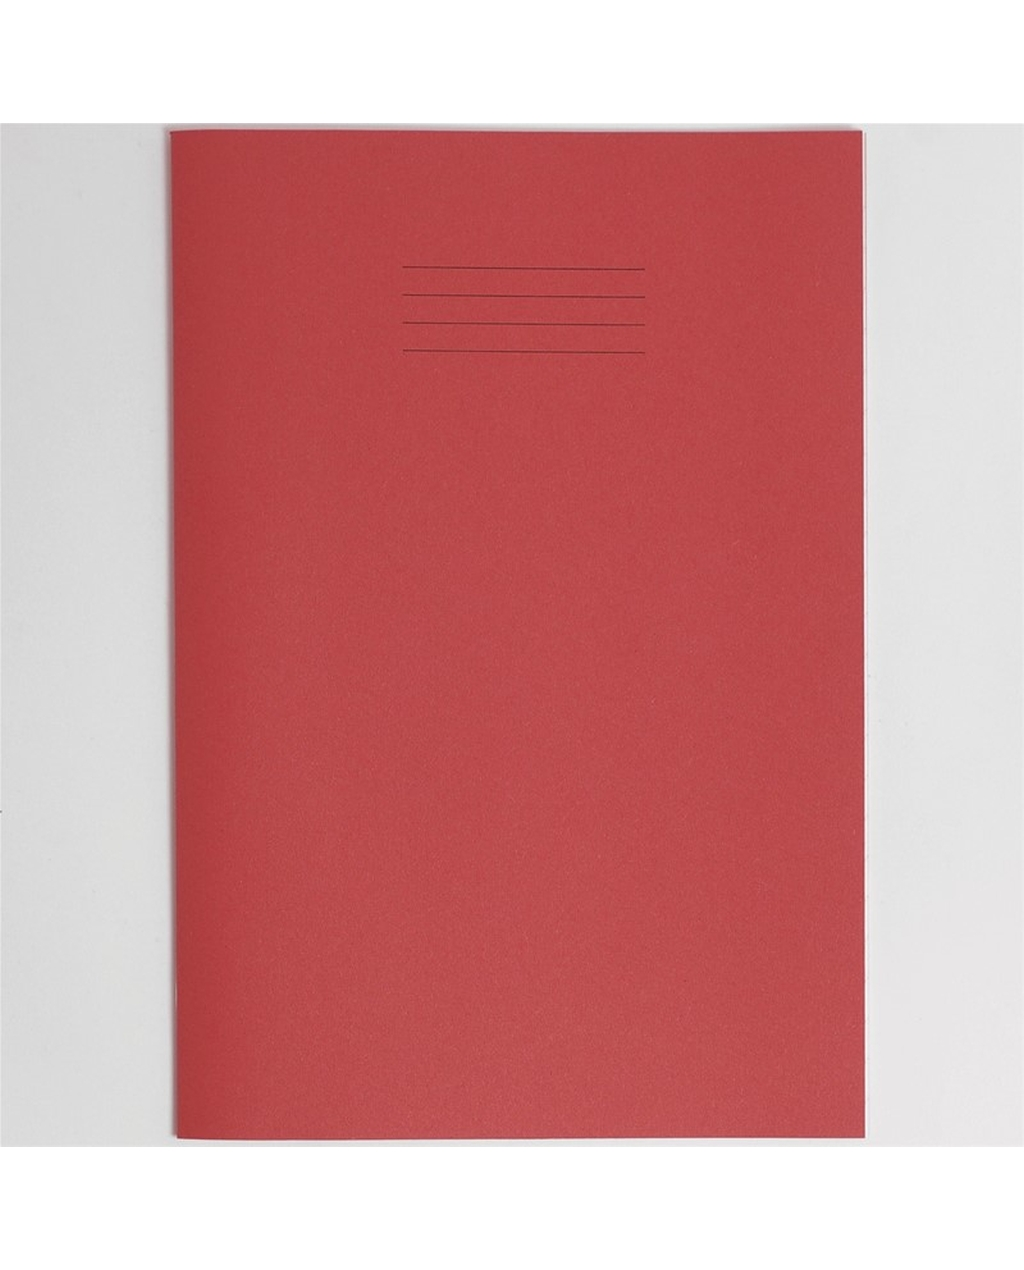 Exercise Book A4+ size (330 x 250mm) Red Cover 12mm Ruled 40 Pages